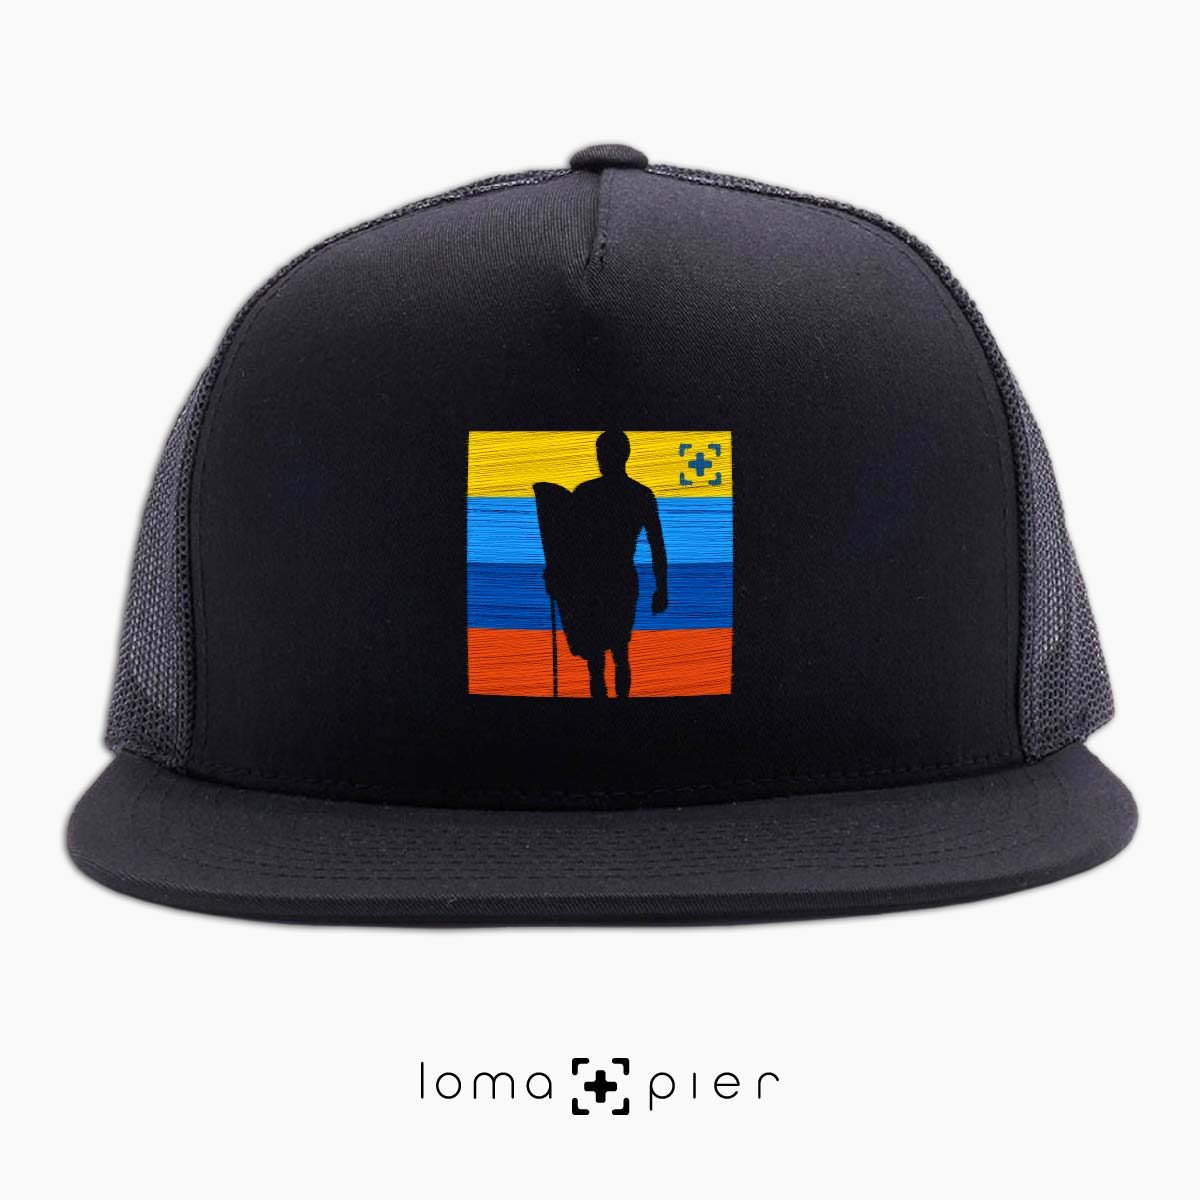 SON OF A BEACH surfer icon netback hat in black by loma+pier hat store